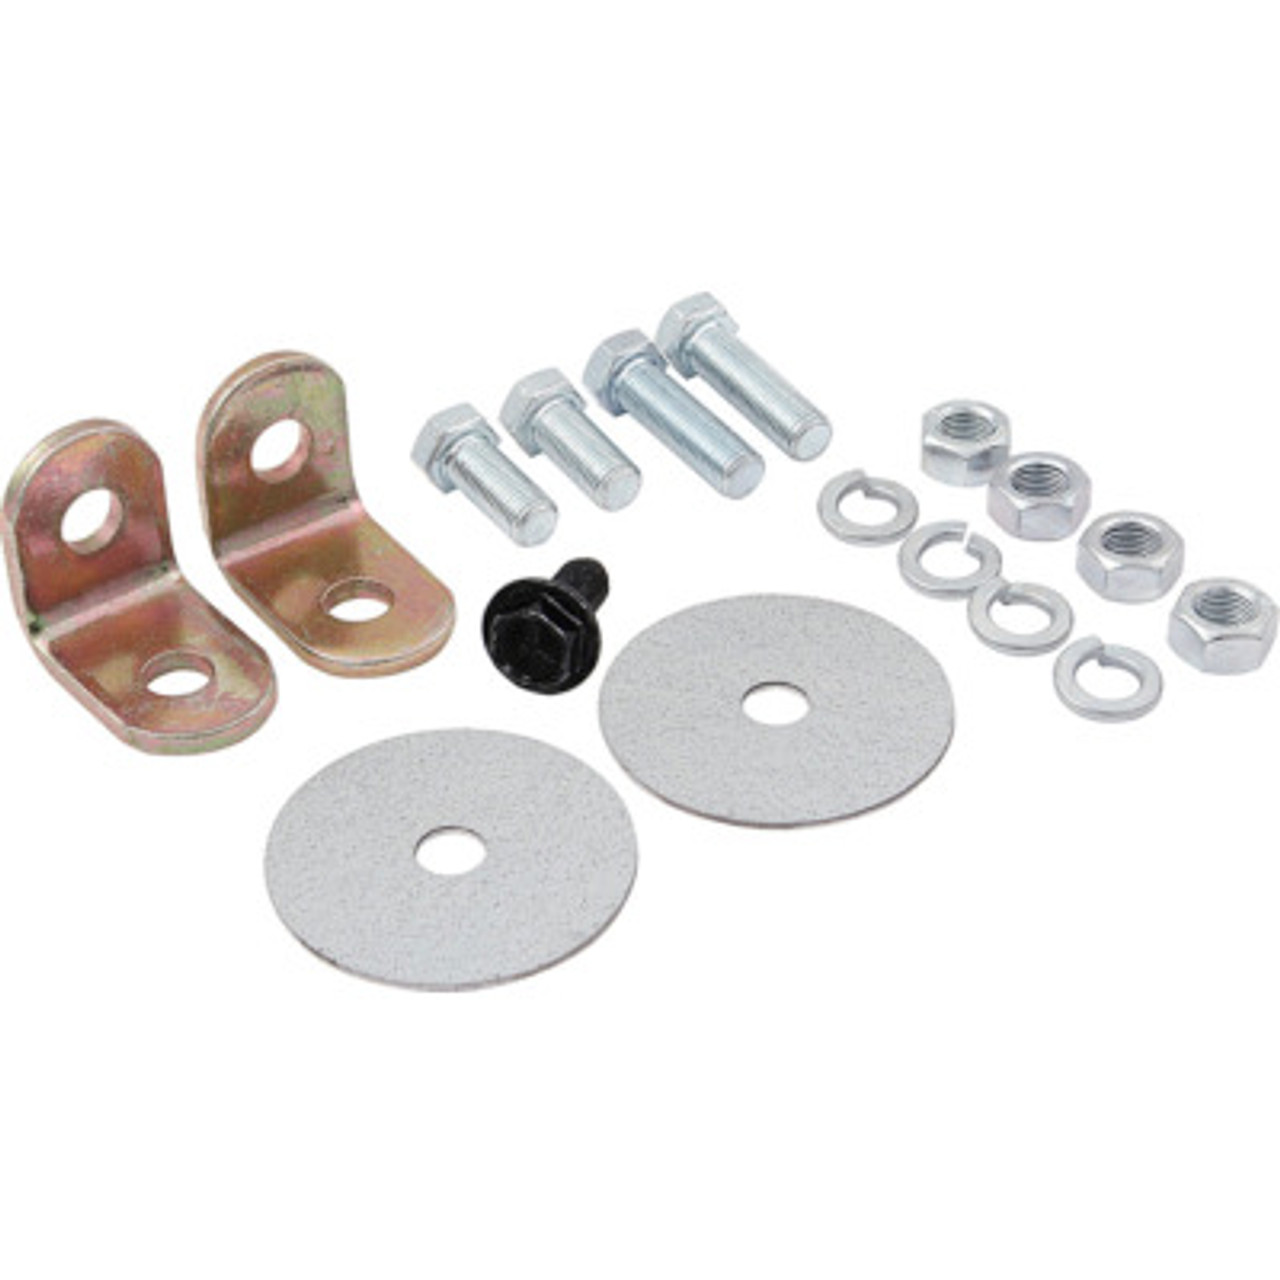 ALL98121, SEAT BELT HARDWARE KIT